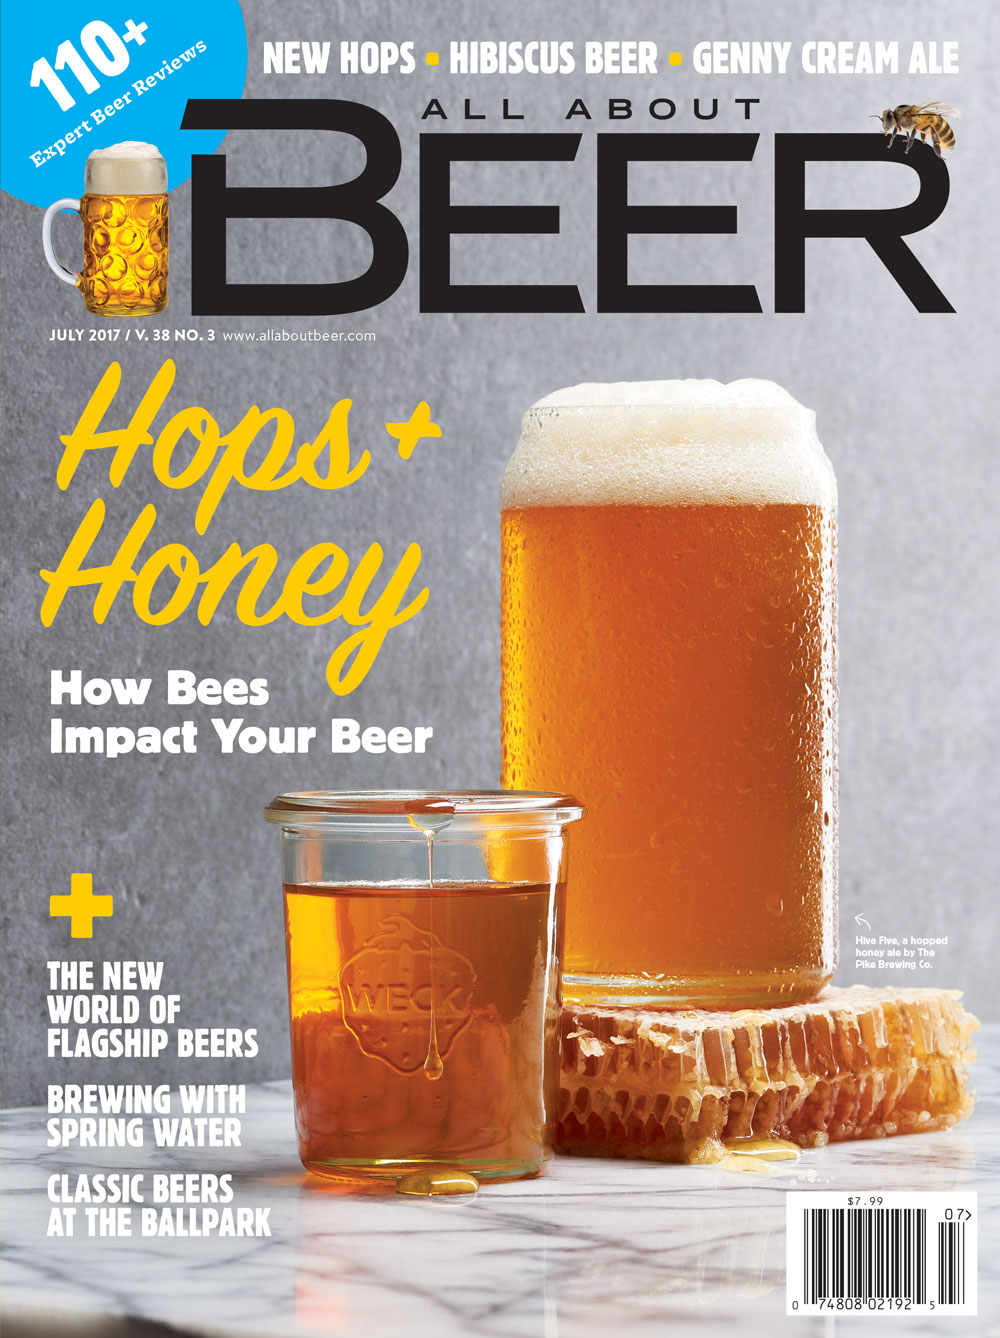 All About Beer Magazine Cover | Amy Roth Photo